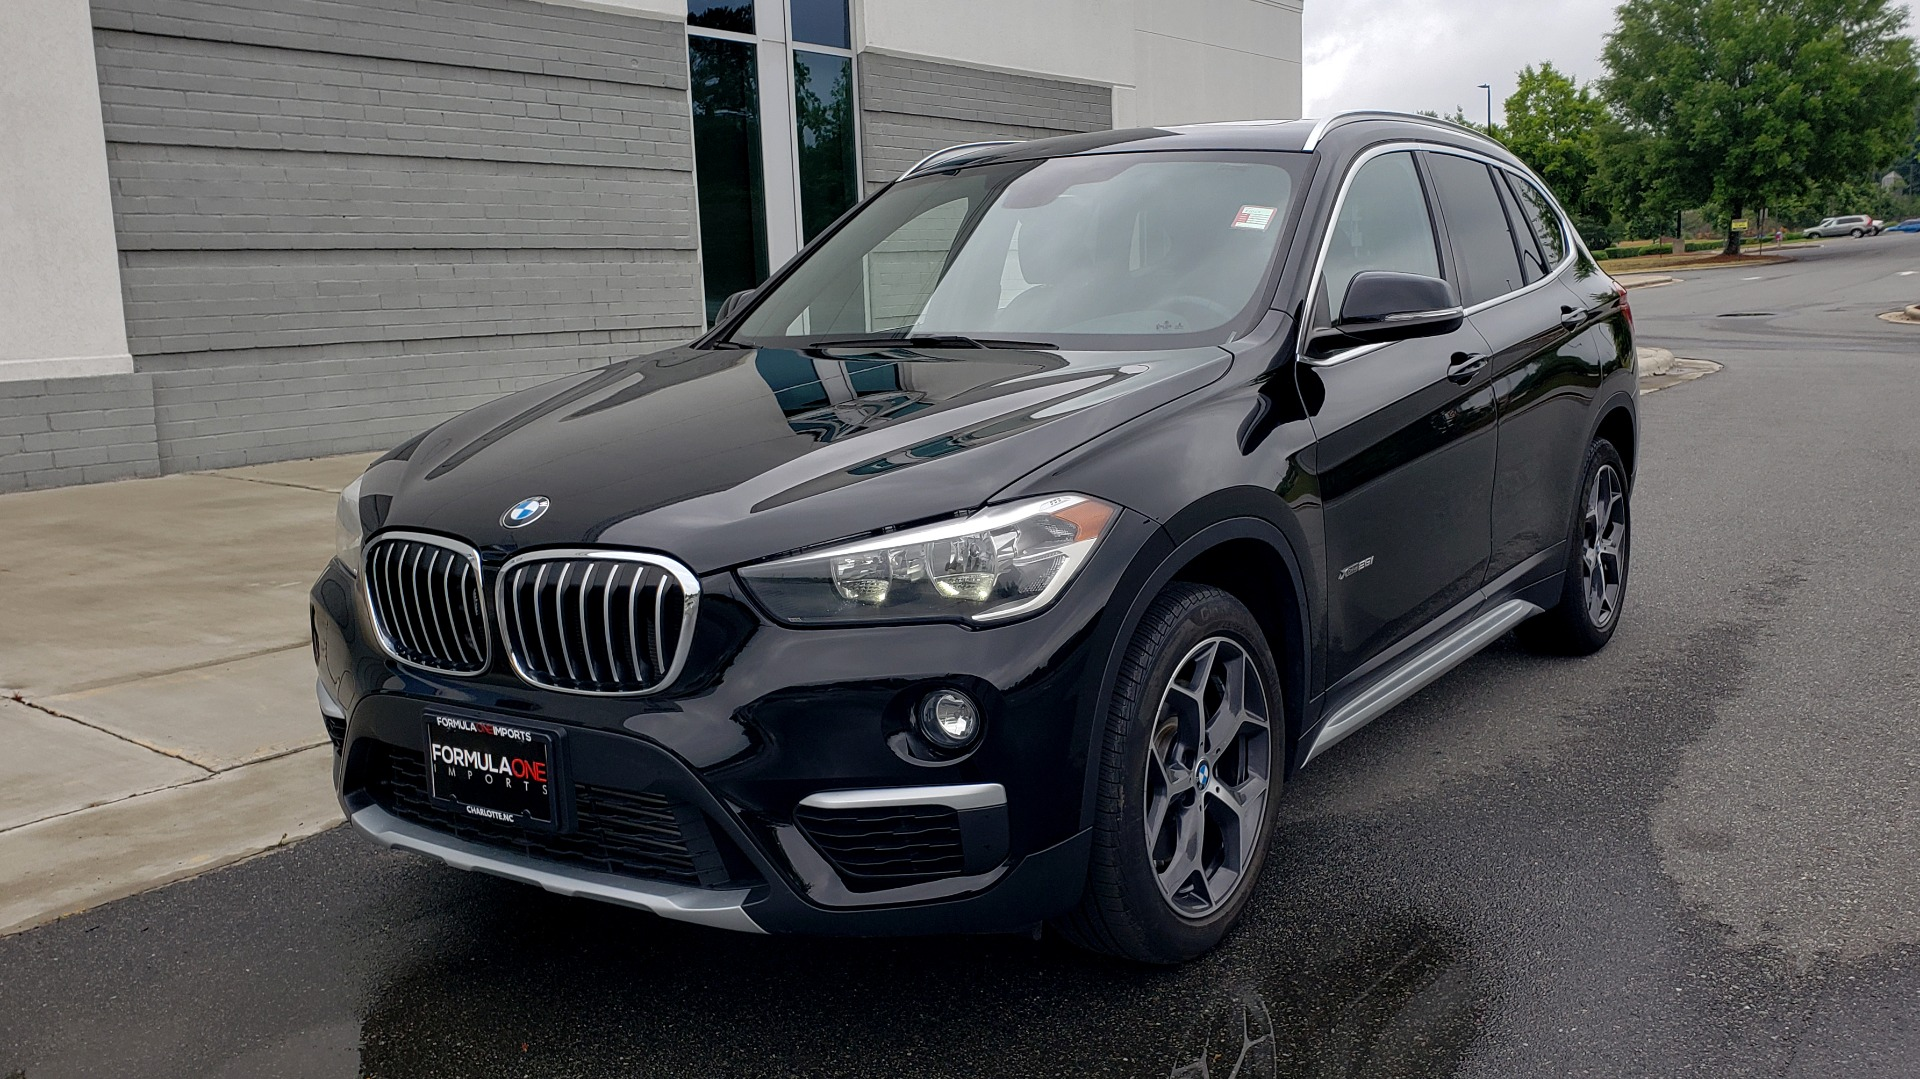 Used 2018 BMW X1 XDRIVE28I / CONV PKG / NAV / HTD STS / PANO-ROOF / REARVIEW for sale $30,995 at Formula Imports in Charlotte NC 28227 3